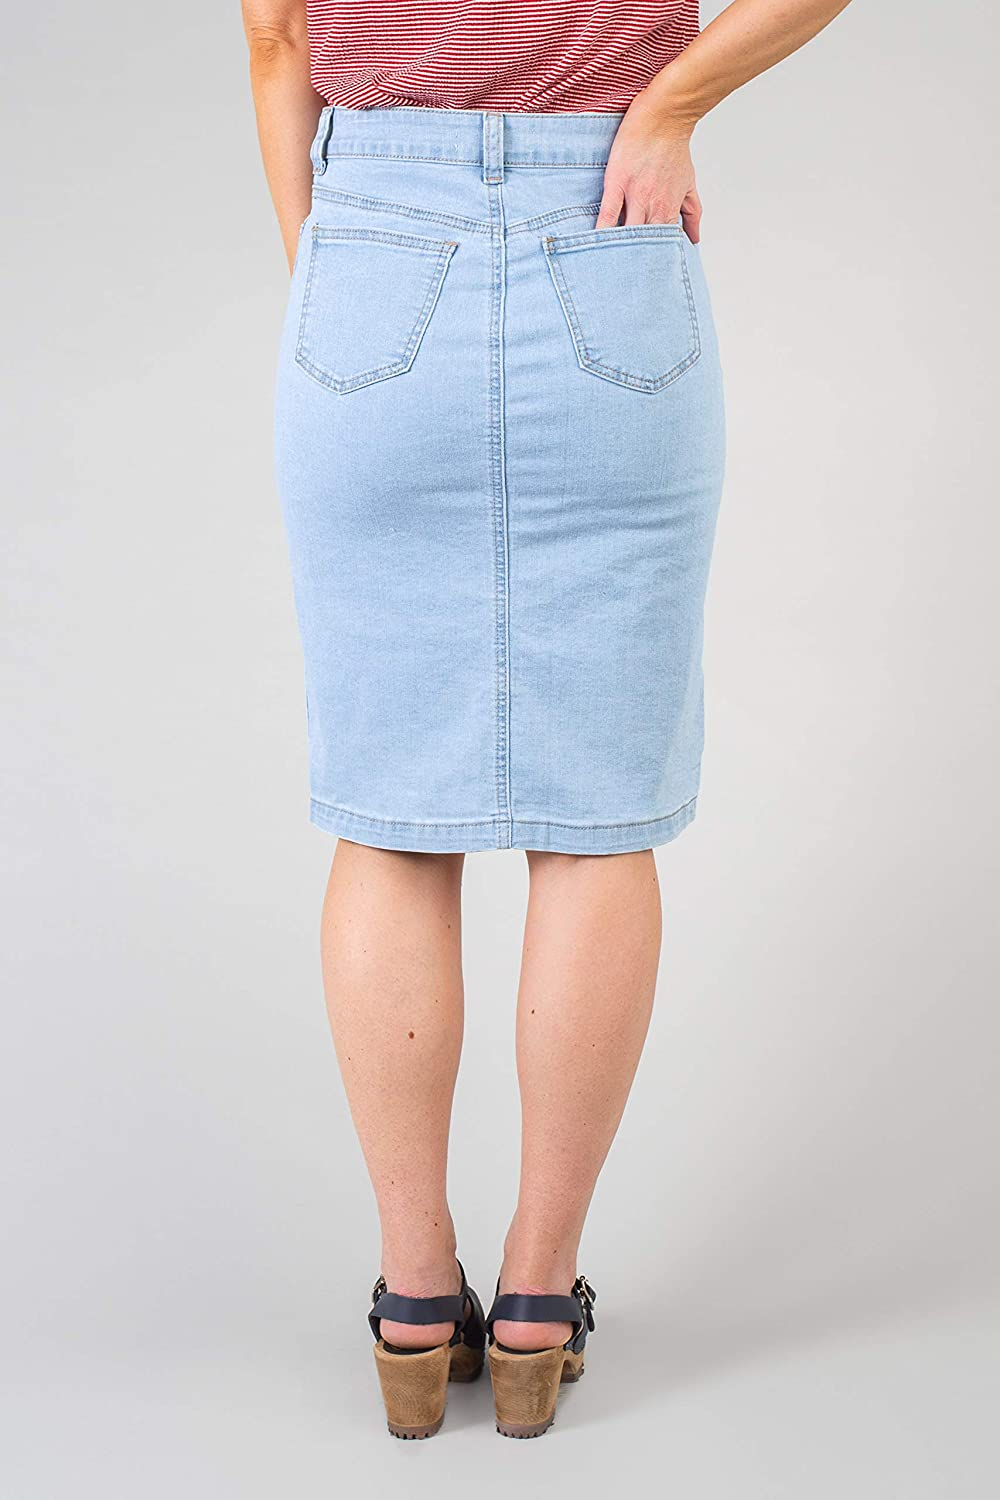 The Kora Mid to High Waisted Extremely Comfy Knee Length Stretchy Functioning Button-Up Denim Jean Skirt with Pockets Light Denim